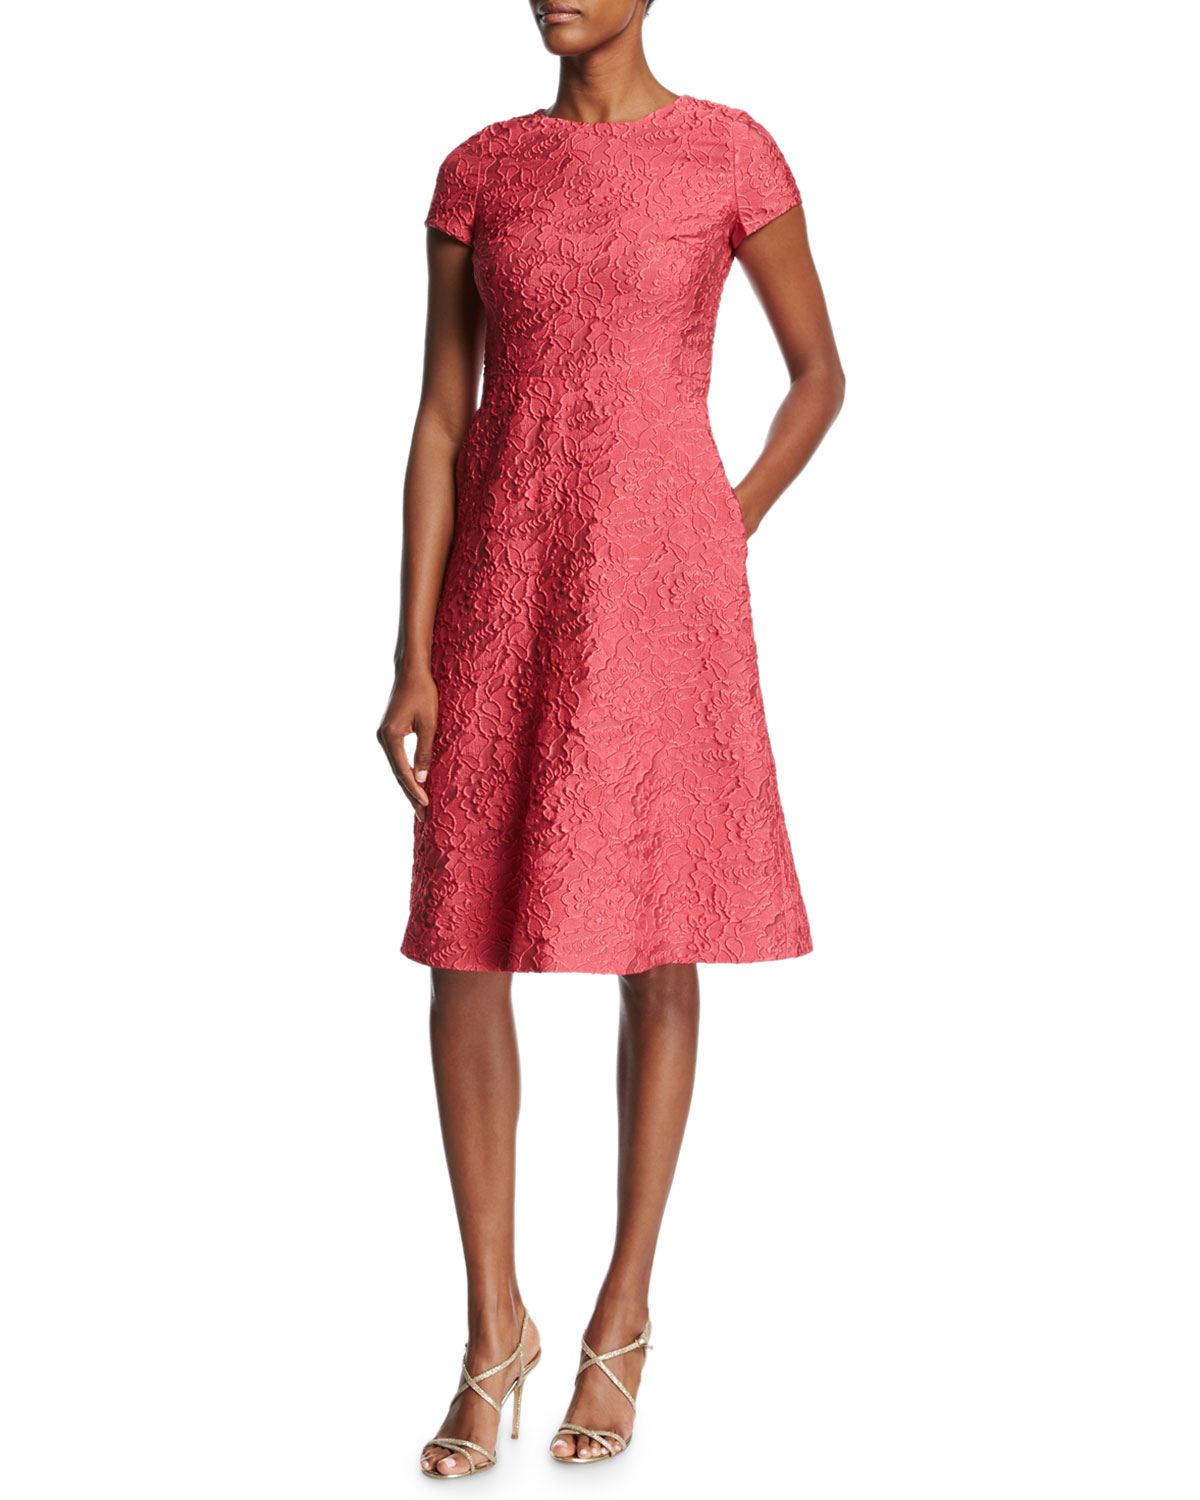 Floral Matelassé Short-Sleeve Dress, Pink Myrtle